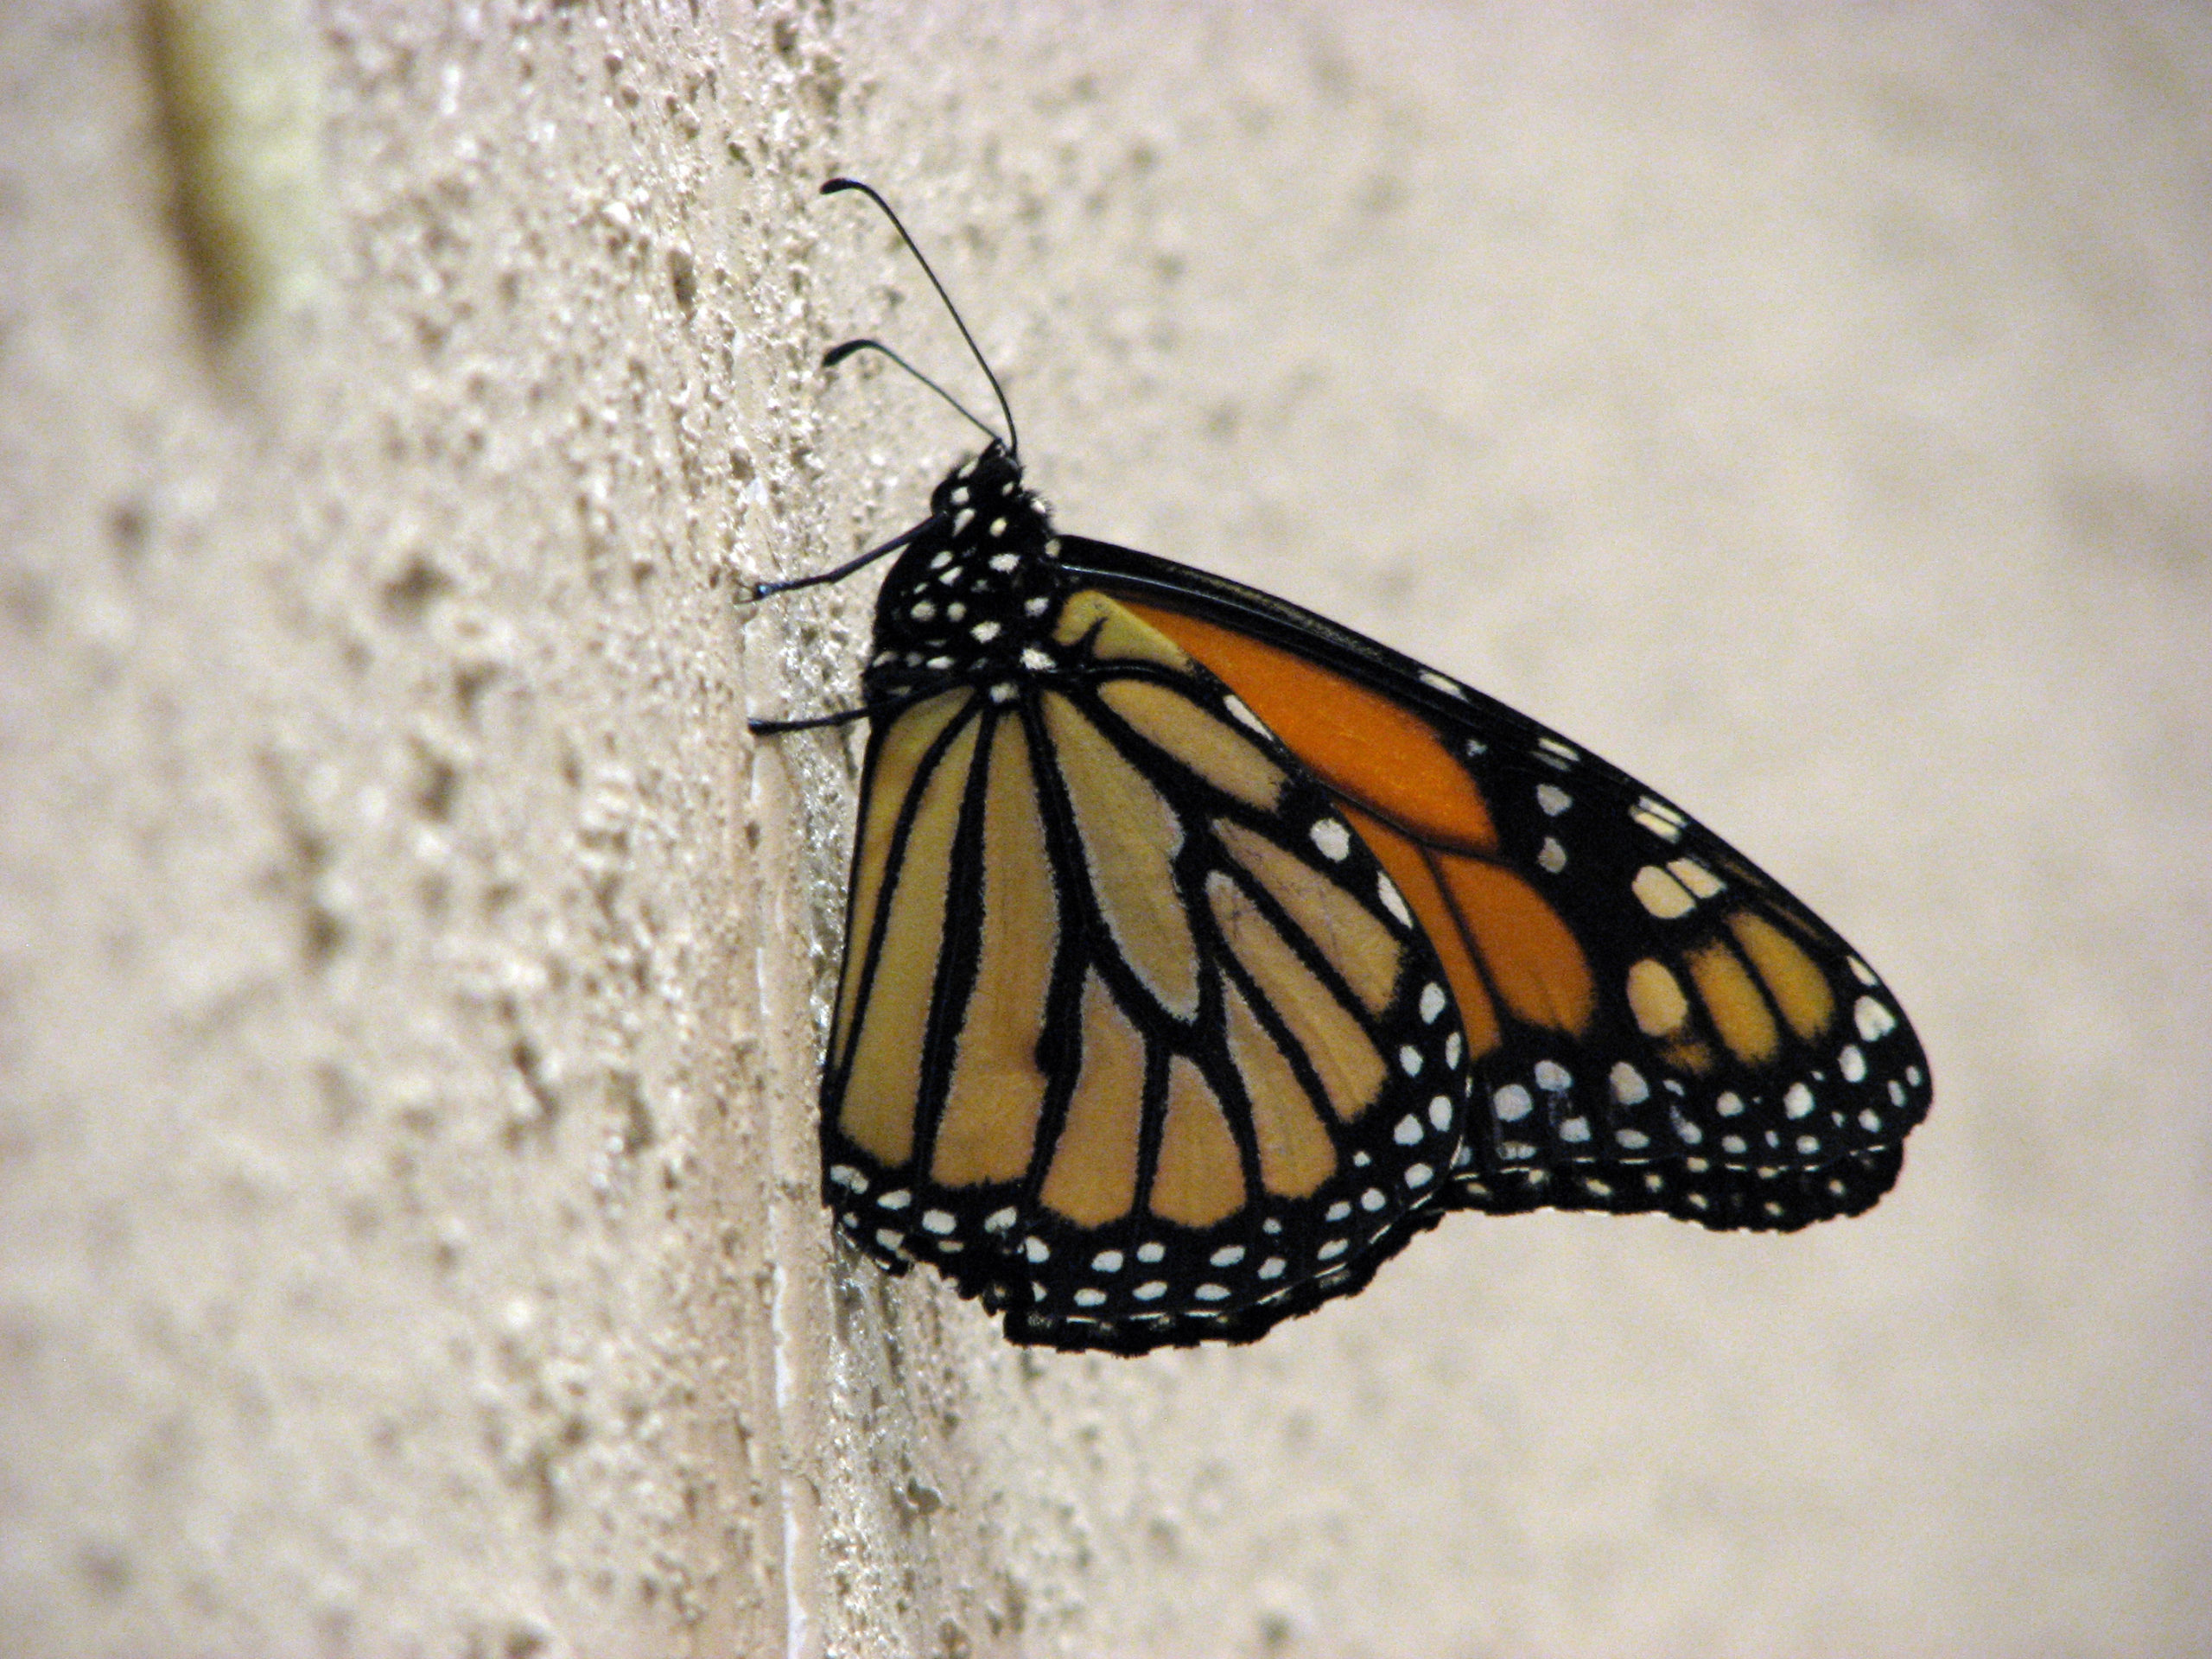 The presence of this beautiful monarch butterfly inspired Constituency Leaders Council members at their Oct. 6–8 meeting in Schiller Park, Ill., as a symbol of metamorphosis, transformation and hope. (Photo by Annette Brill Bergstresser)